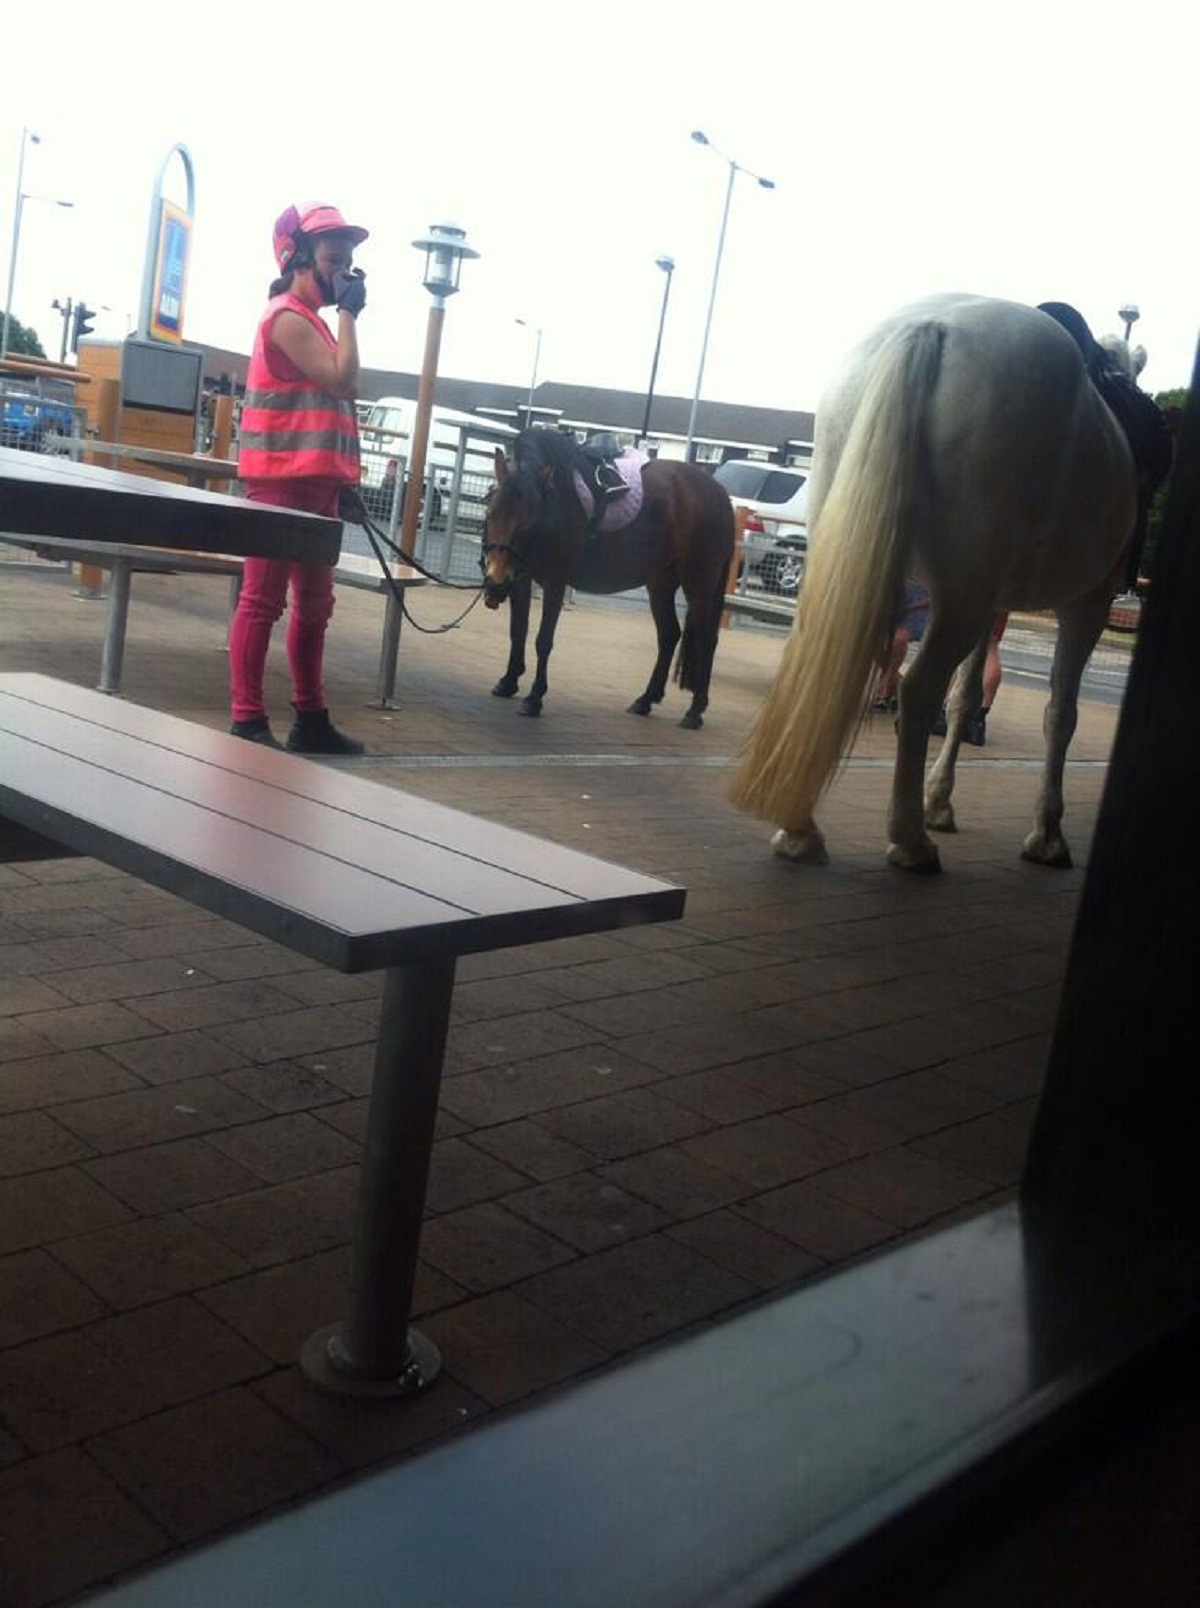 Woman fined for taking horse into McDonald's